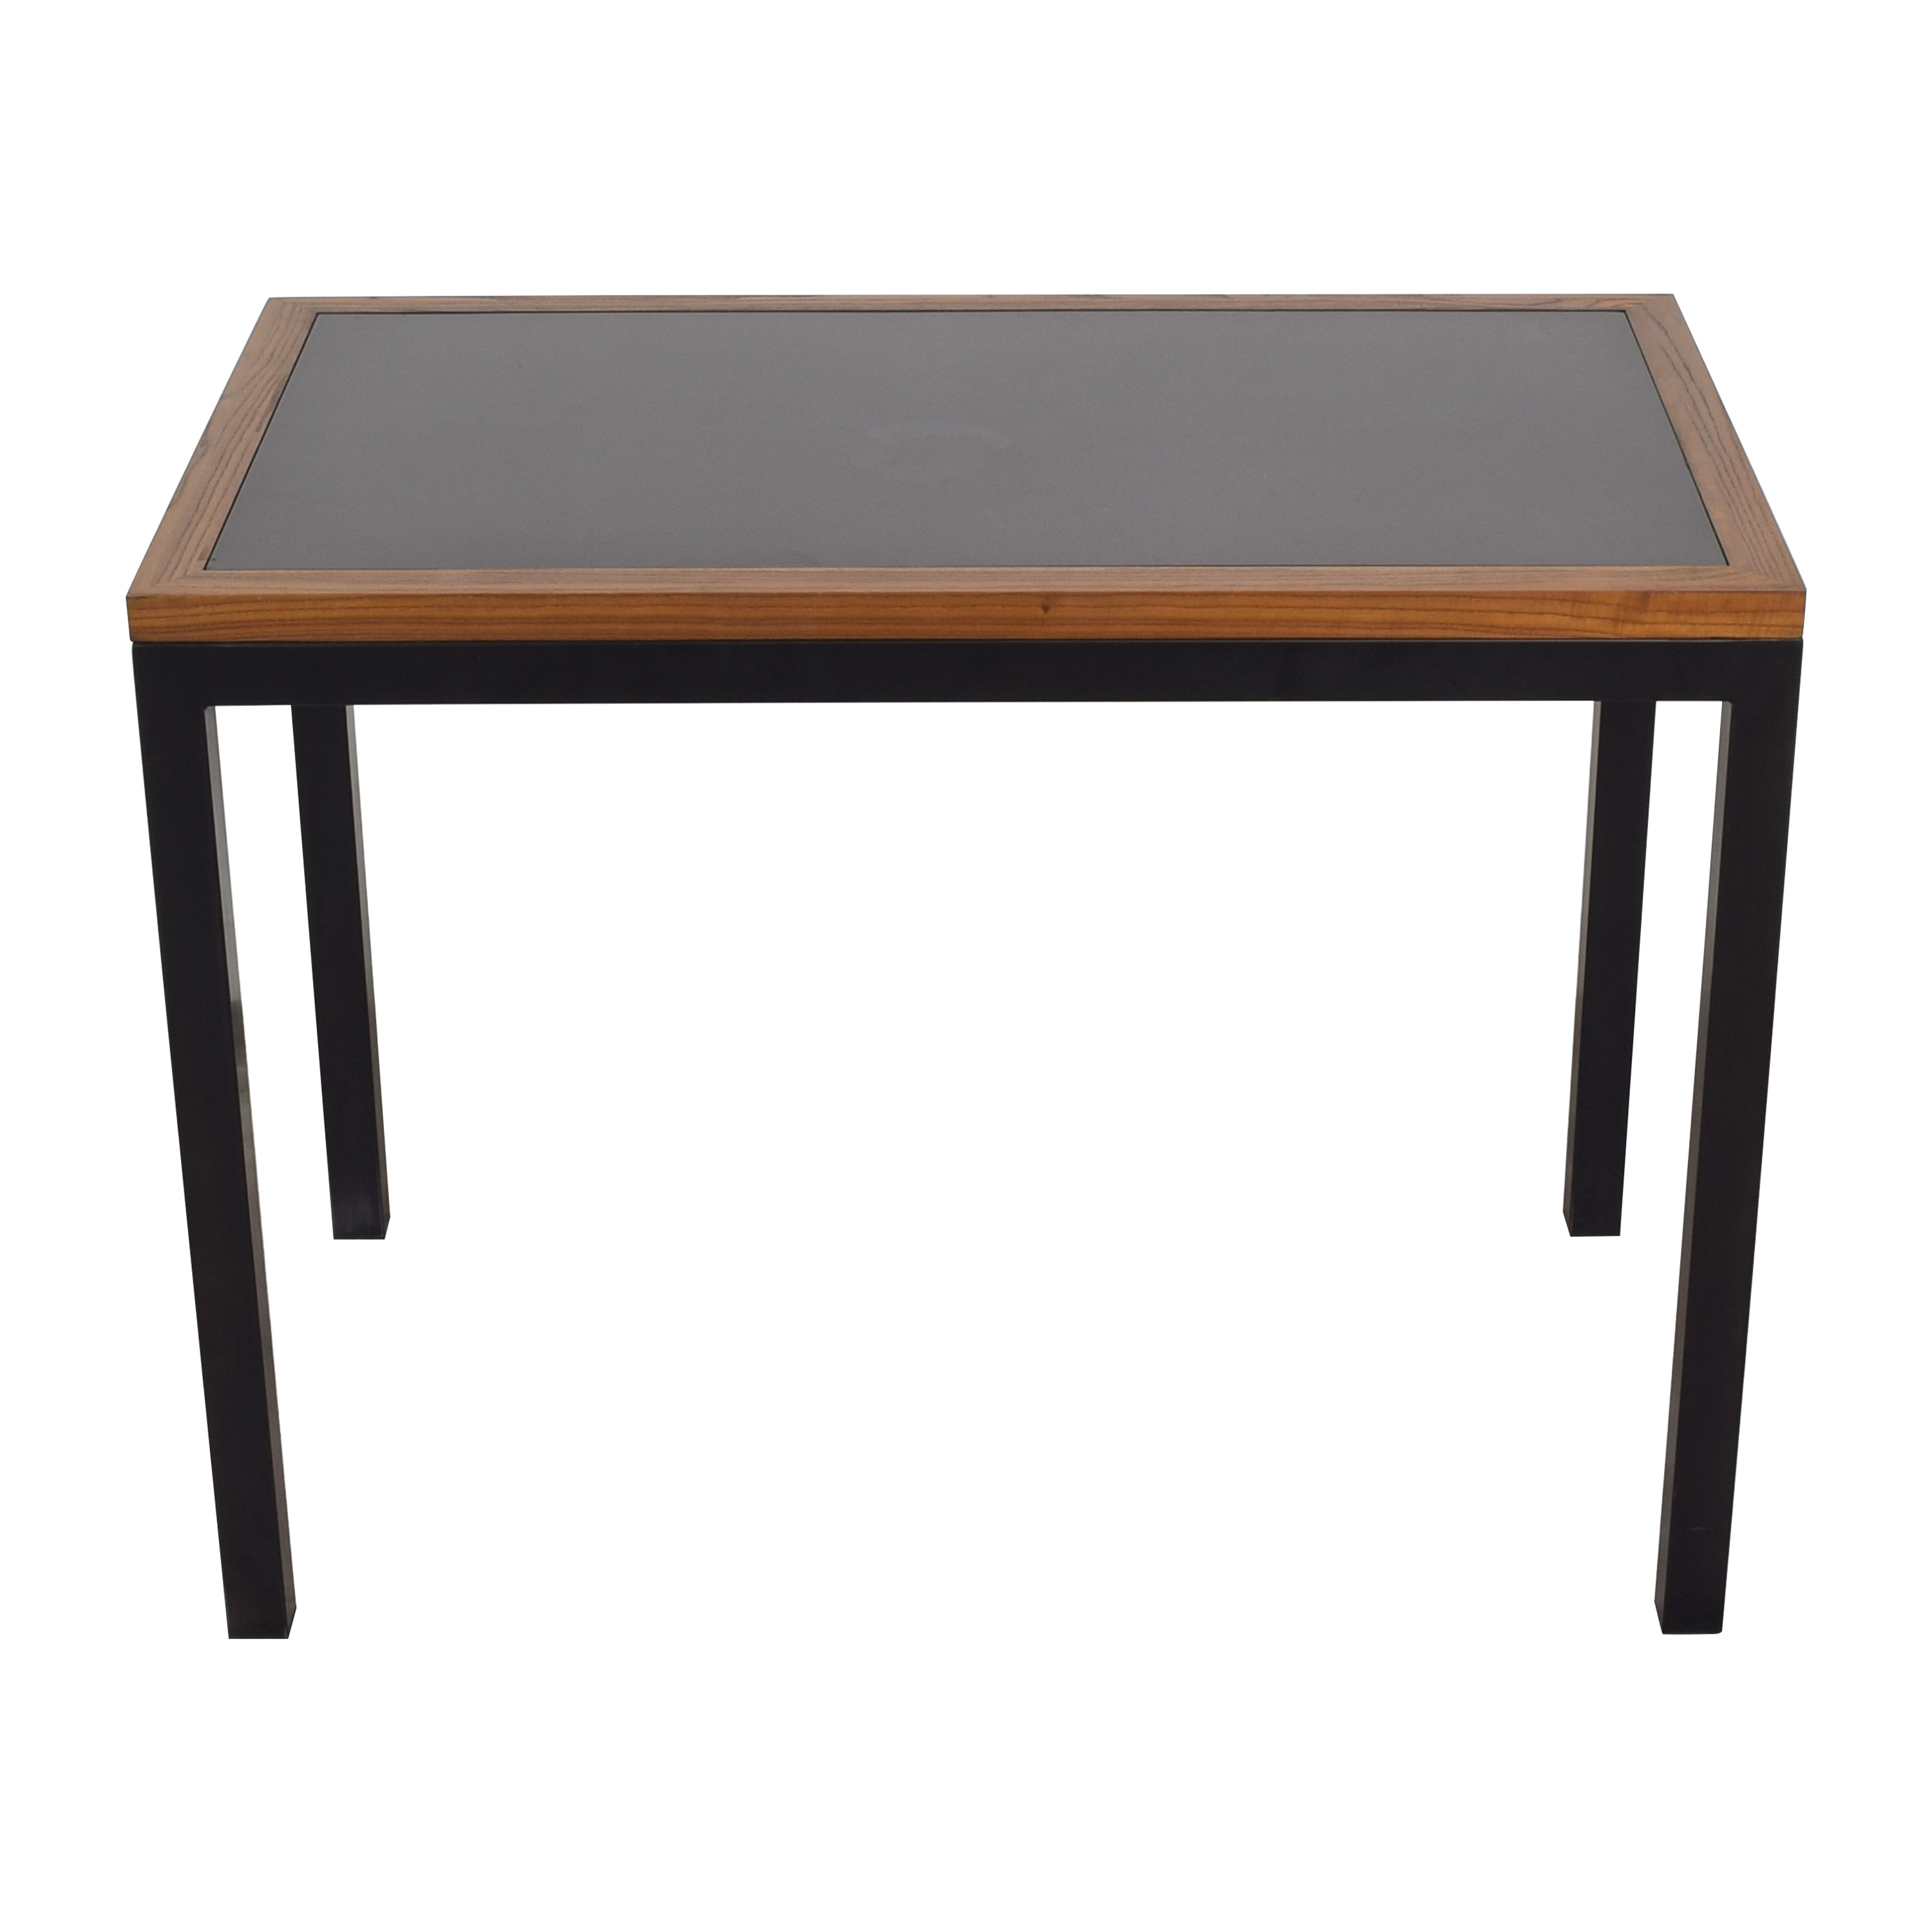 Maria Yee Tall Dining Table / Dinner Tables